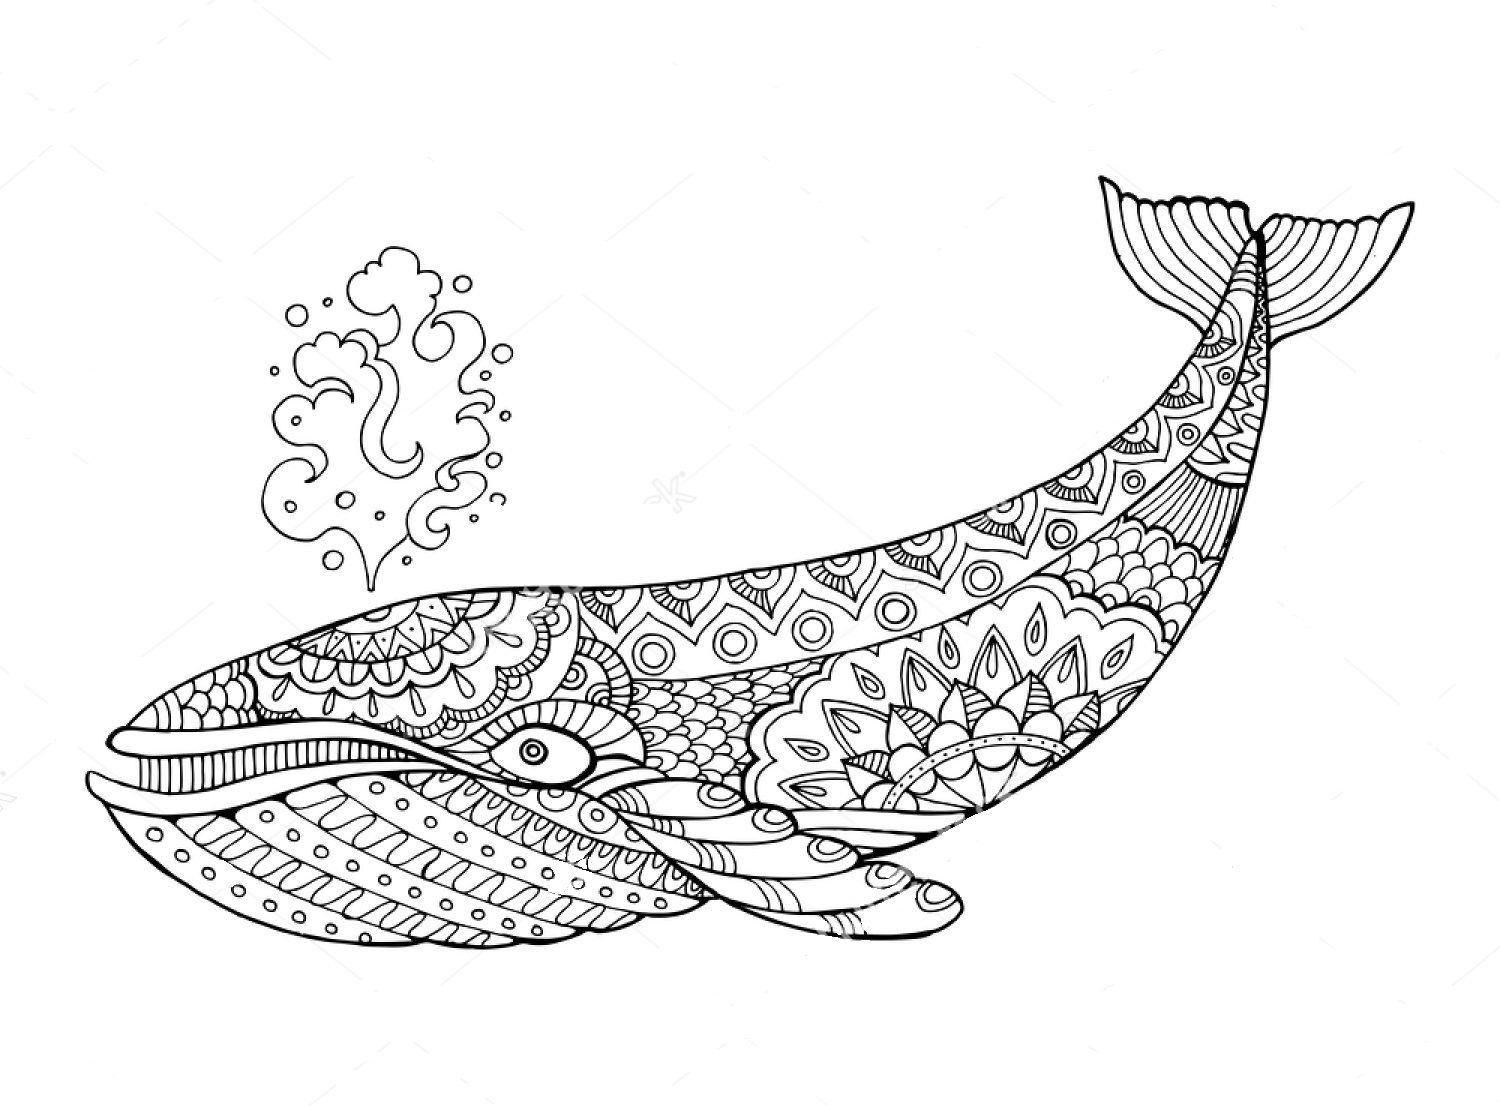 Whale Zentangle Coloring Page Animal Coloring Books Coloring Books Mandala Coloring Pages